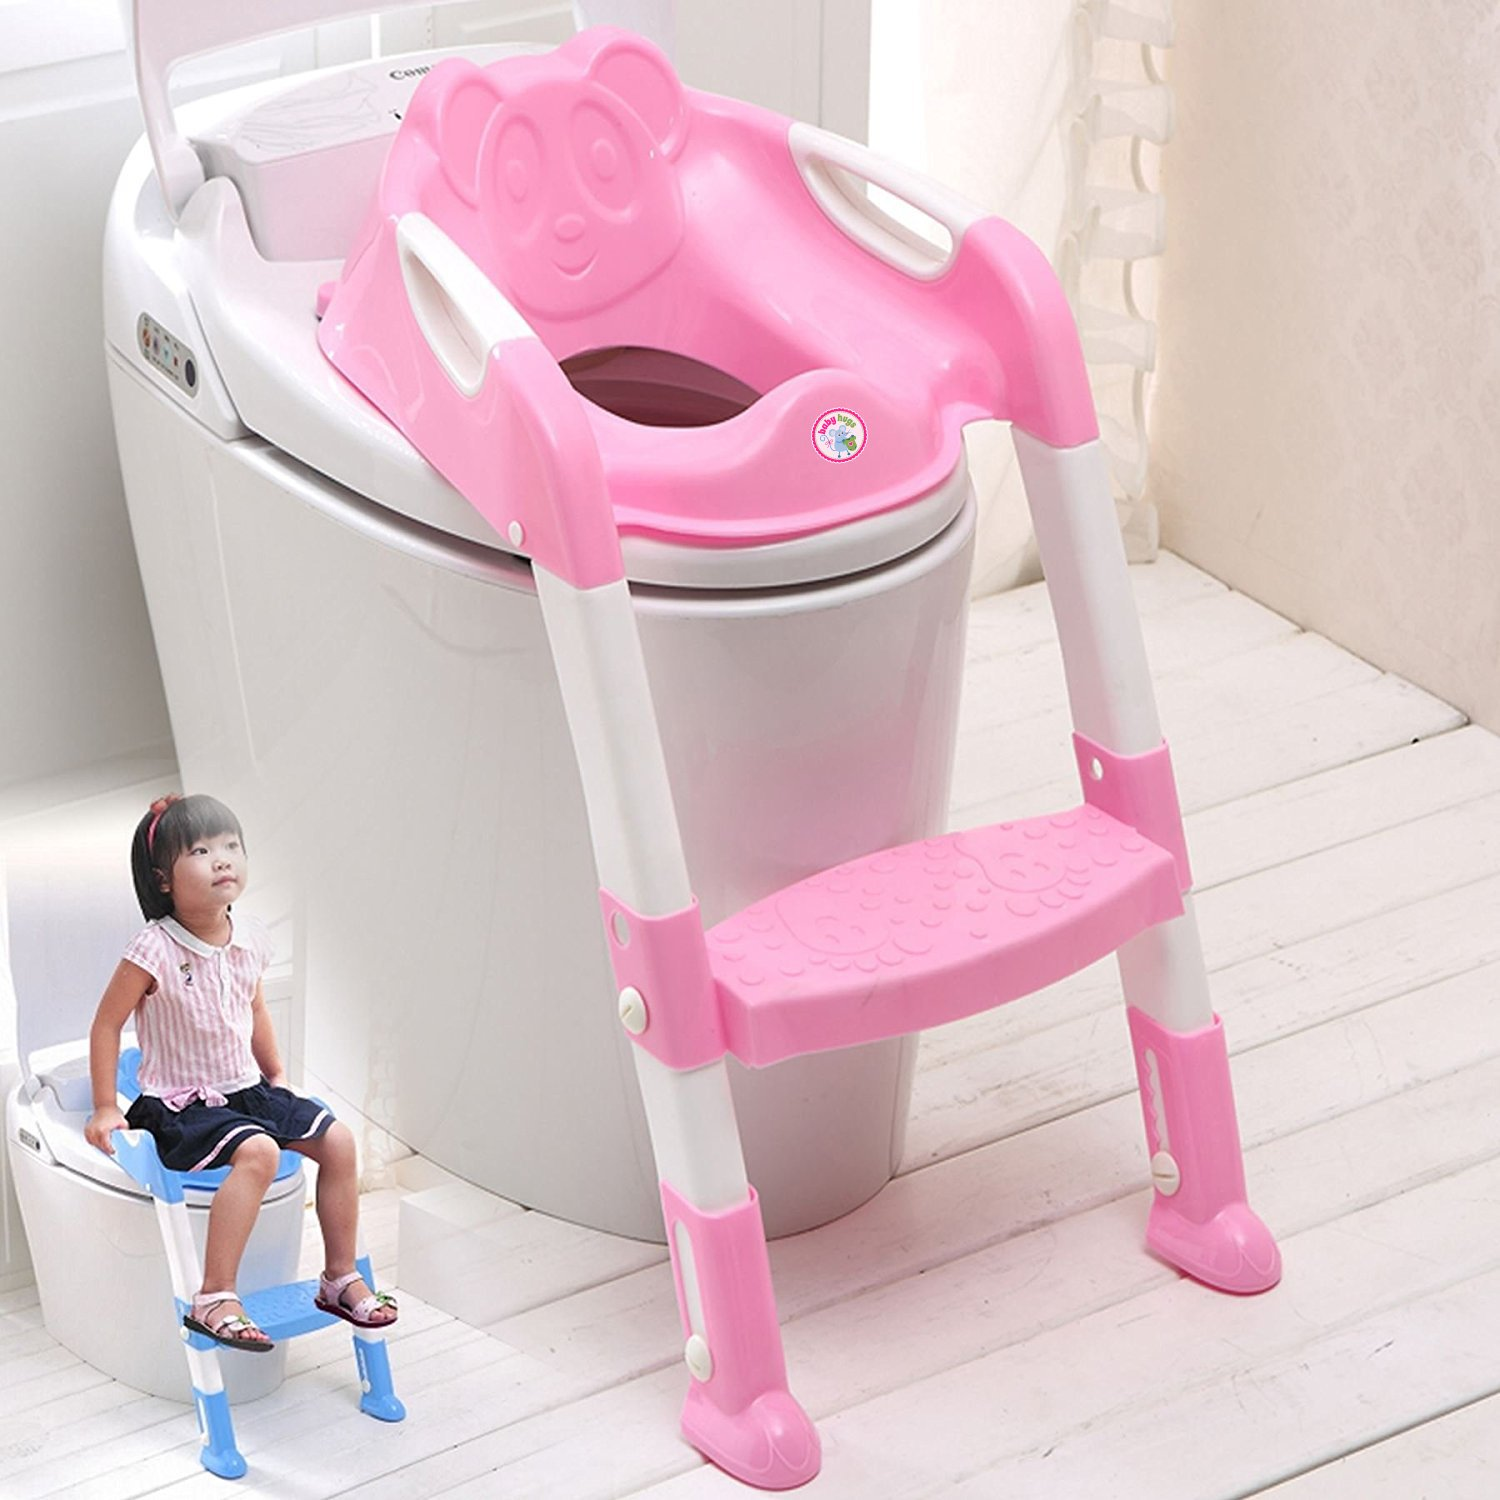 Babyhugs - Baby Toddler Potty Training Toilet Ladder Seat Steps Assistant Potty For Toddler Child Toilet Trainer (Pink) DA-6815